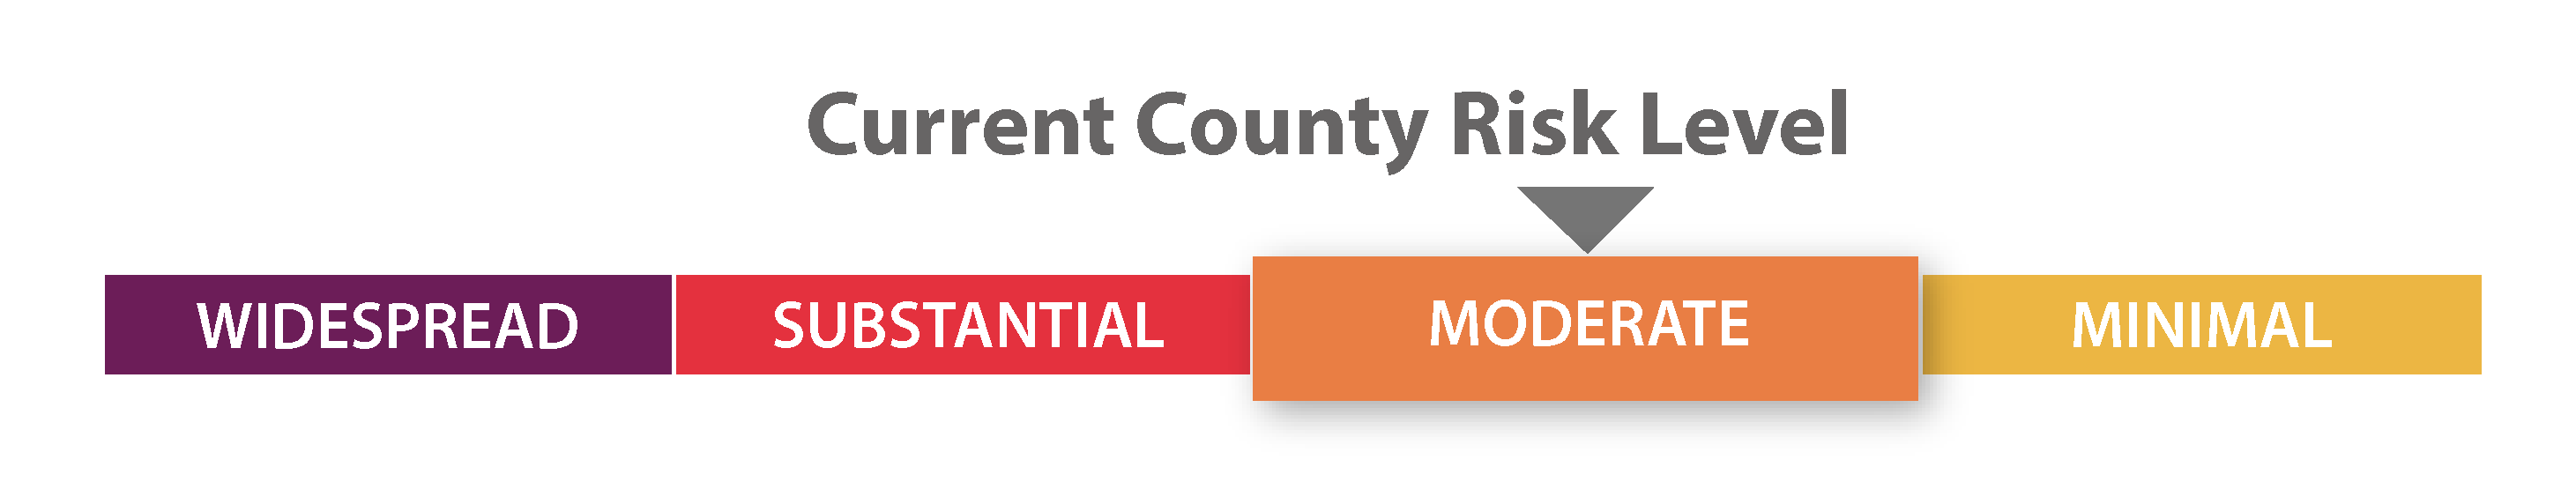 Current County Risk Level